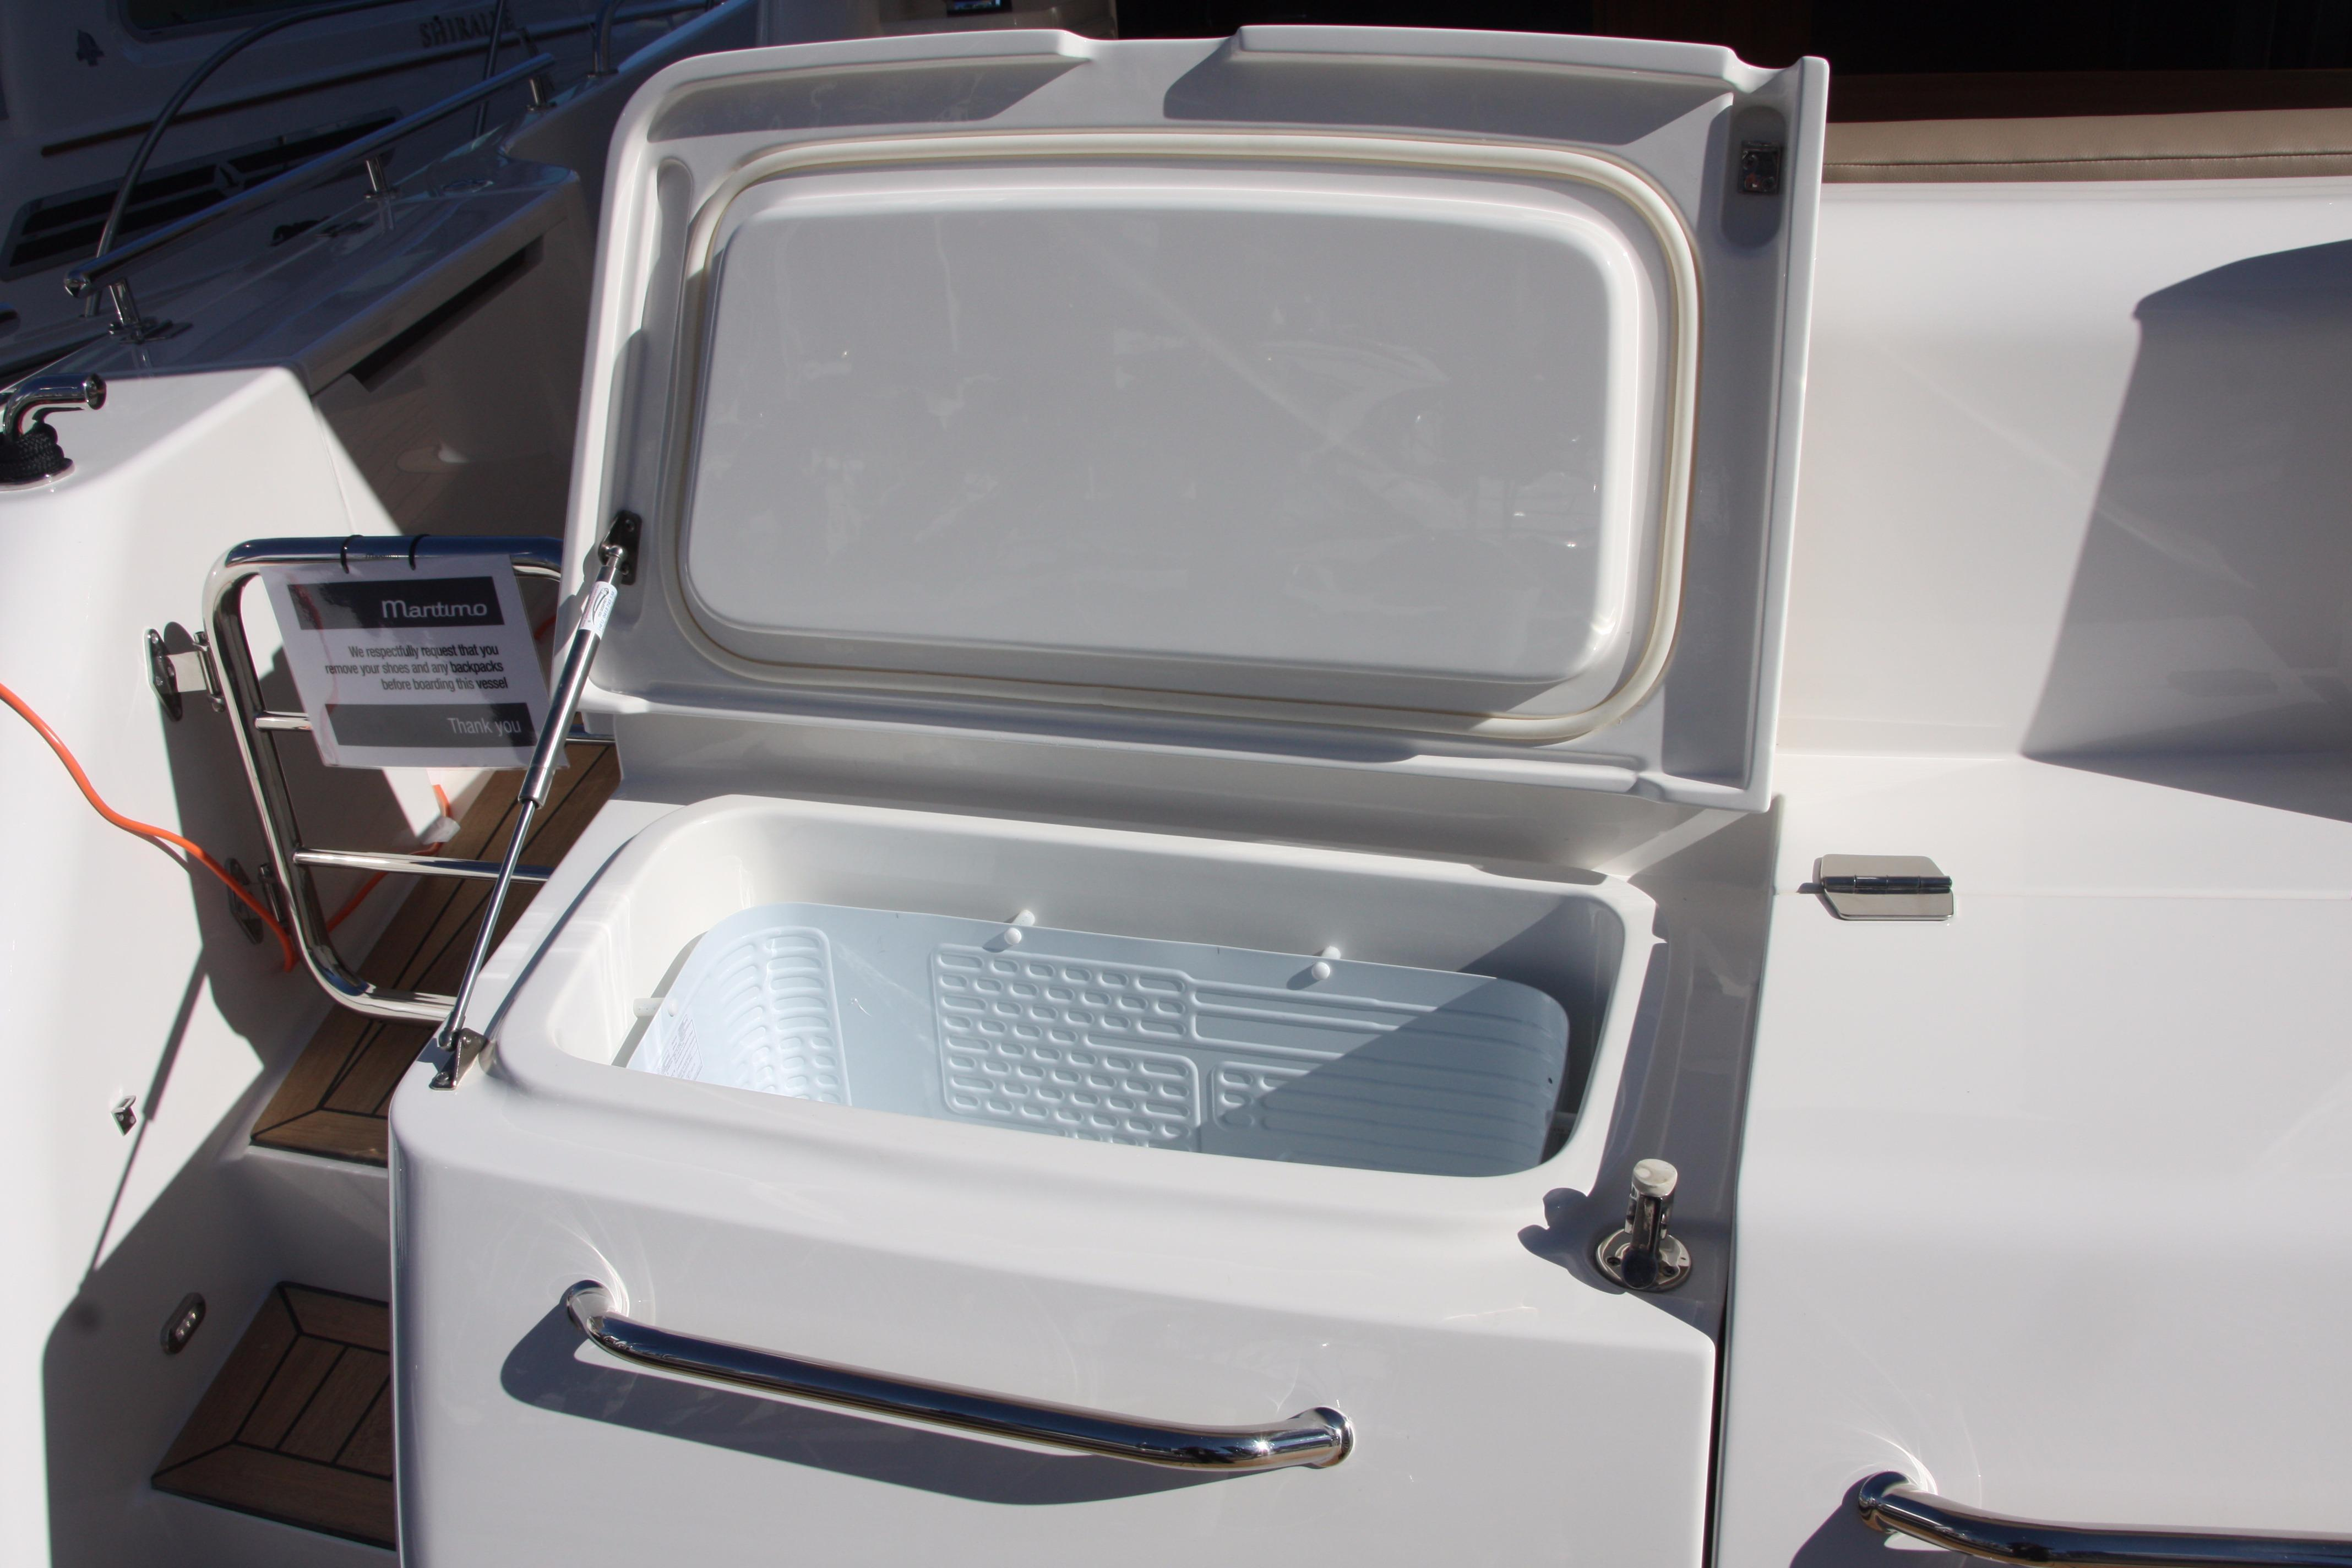 Transom Plate Cooler